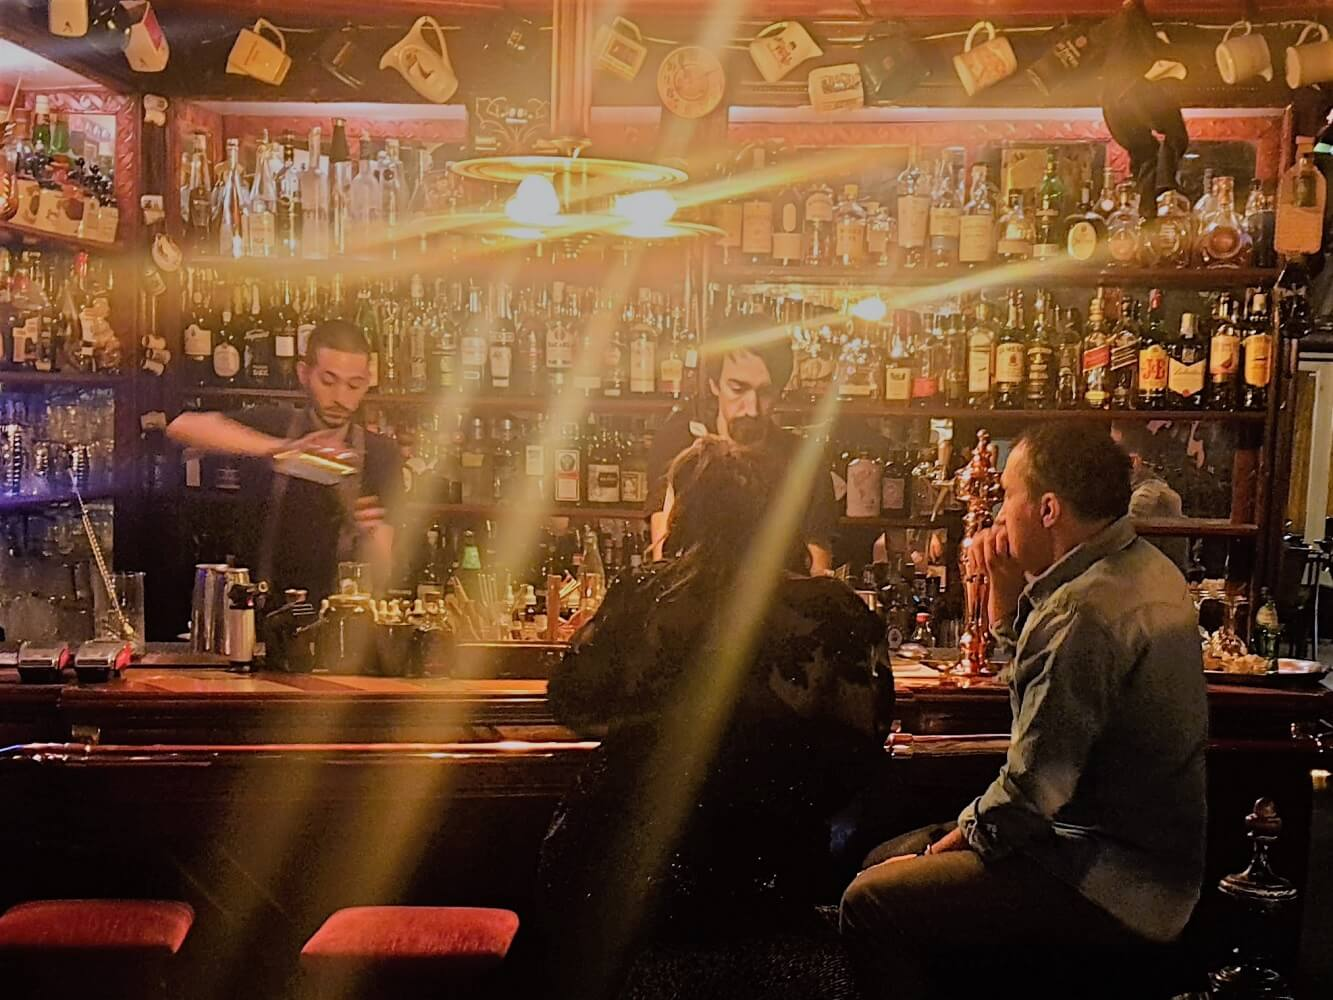 Lisbon's best cocktail bars (if you ask us)